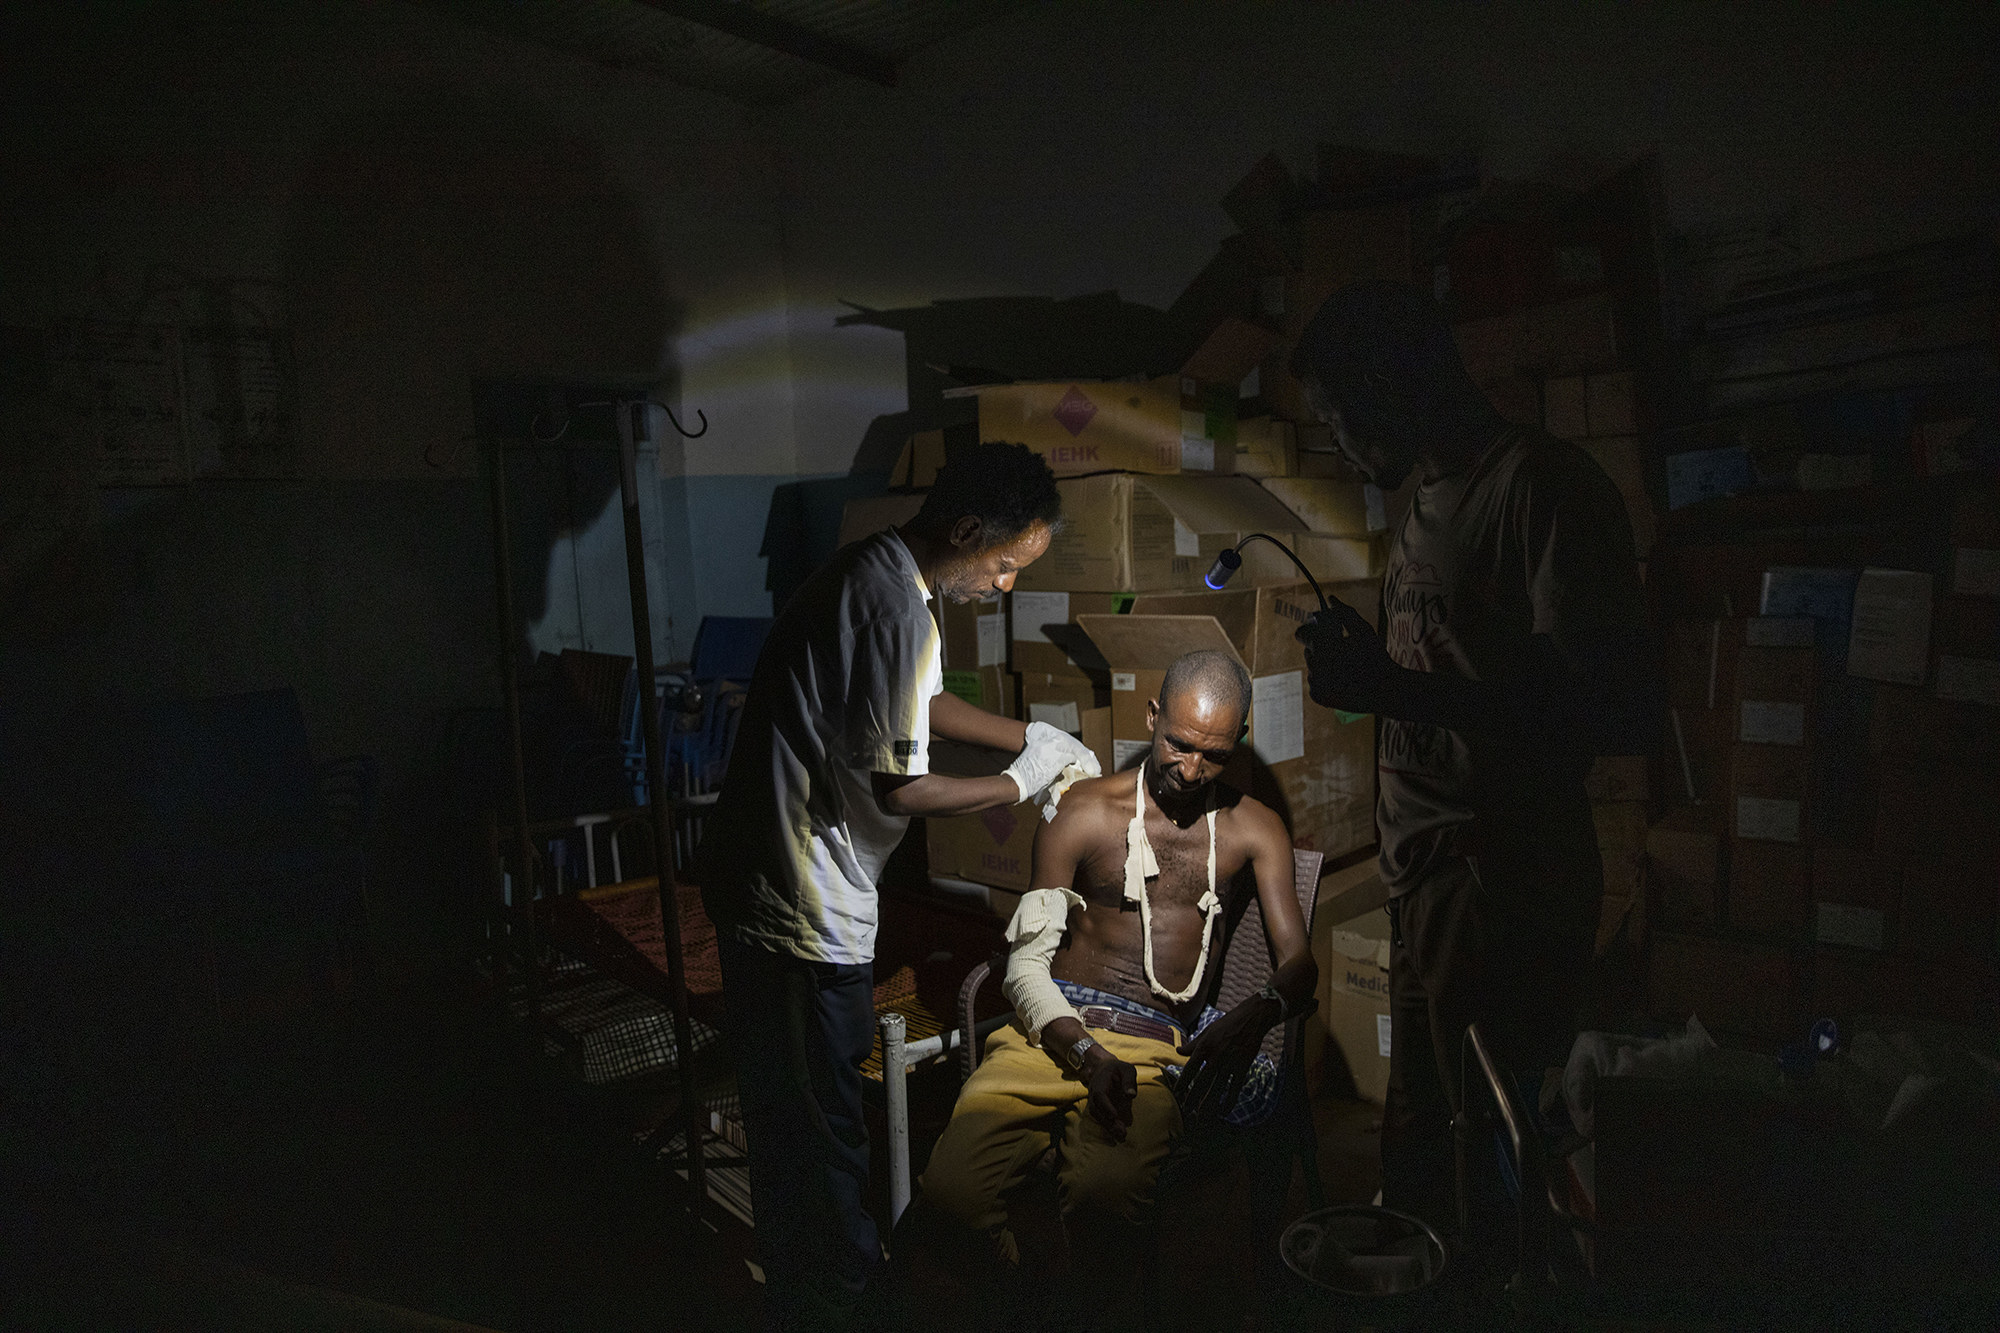 A man cleans a wound and makes a cast for a refugee